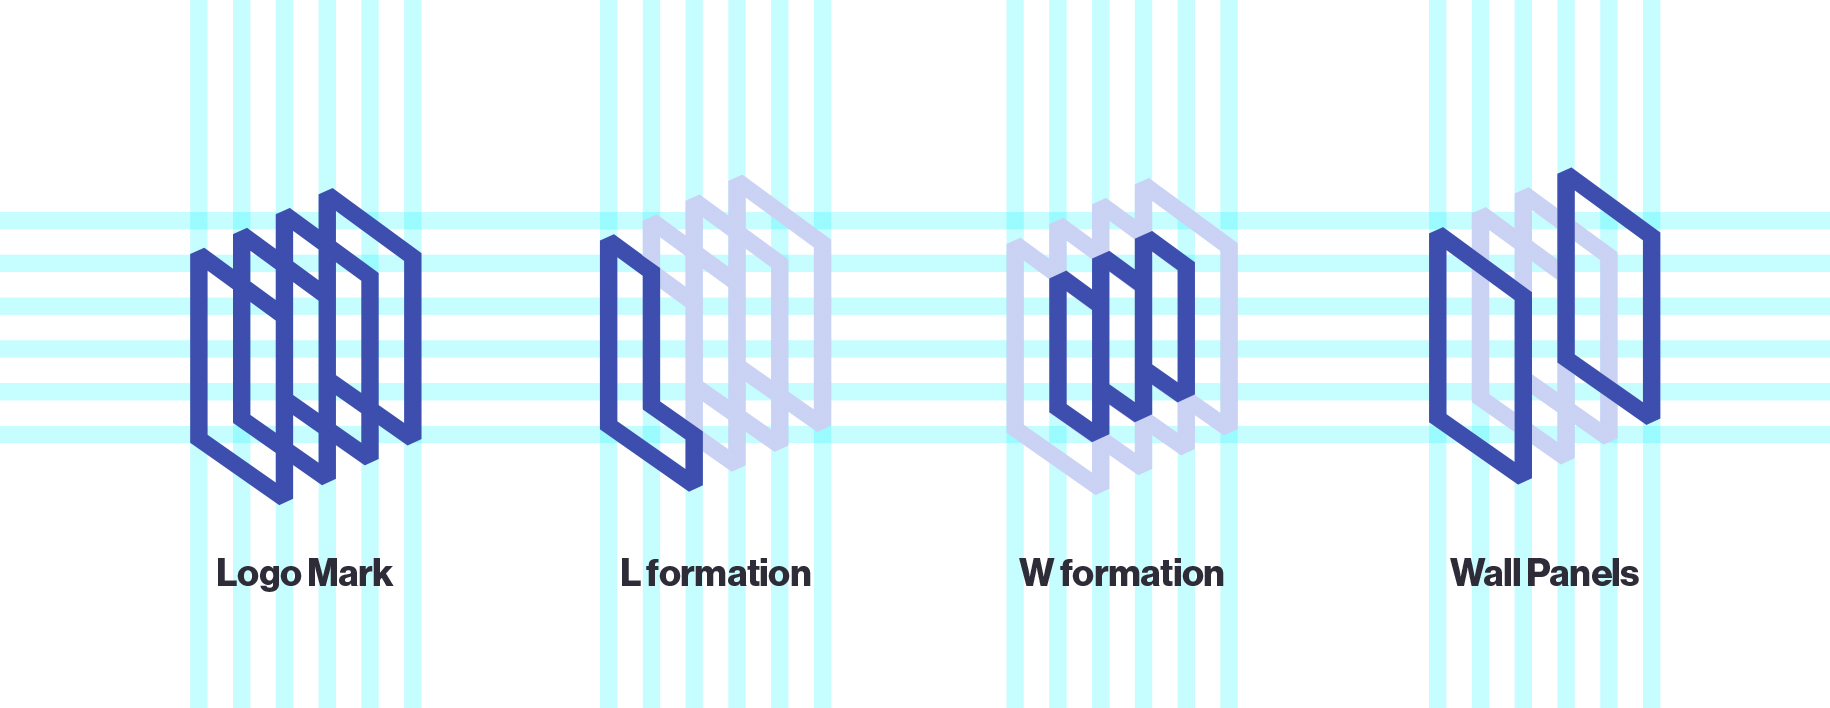 The logomark represents the collection of artists works/walls, as well as an L and a W.